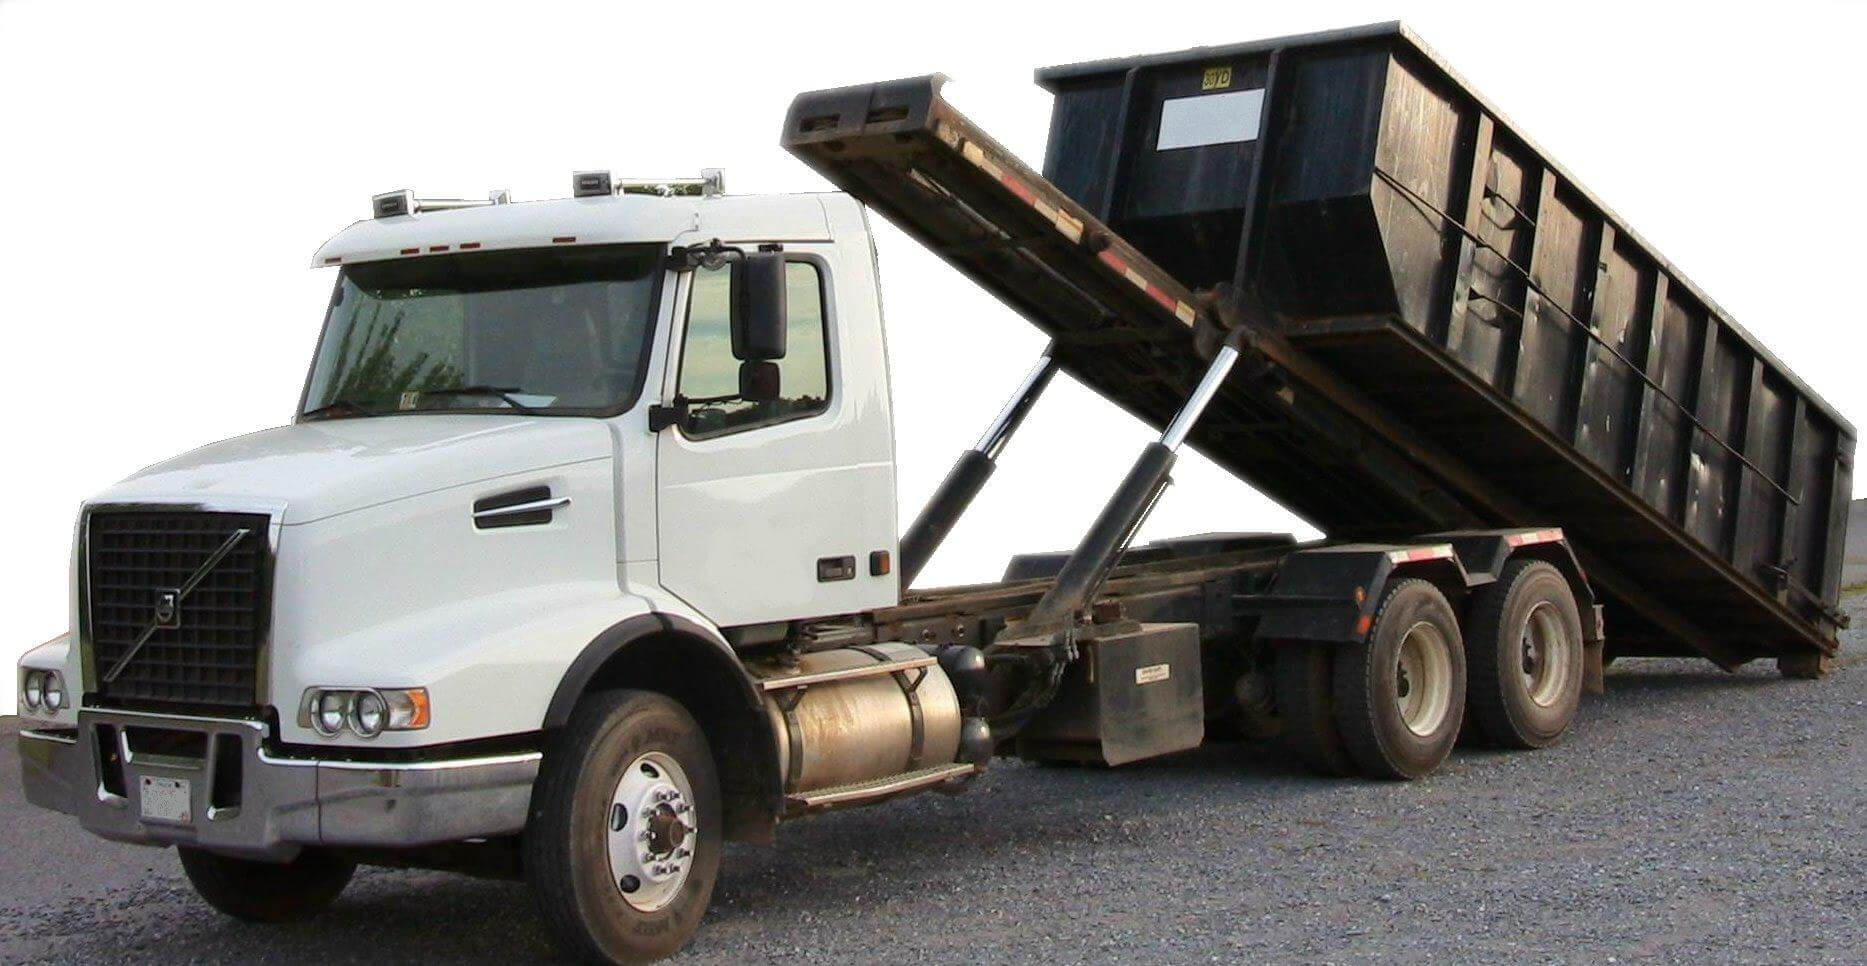 San Diego Demolition Pros & Dumpster Rental Services-San Diego Demolition Pros & Dumpster Rental Services